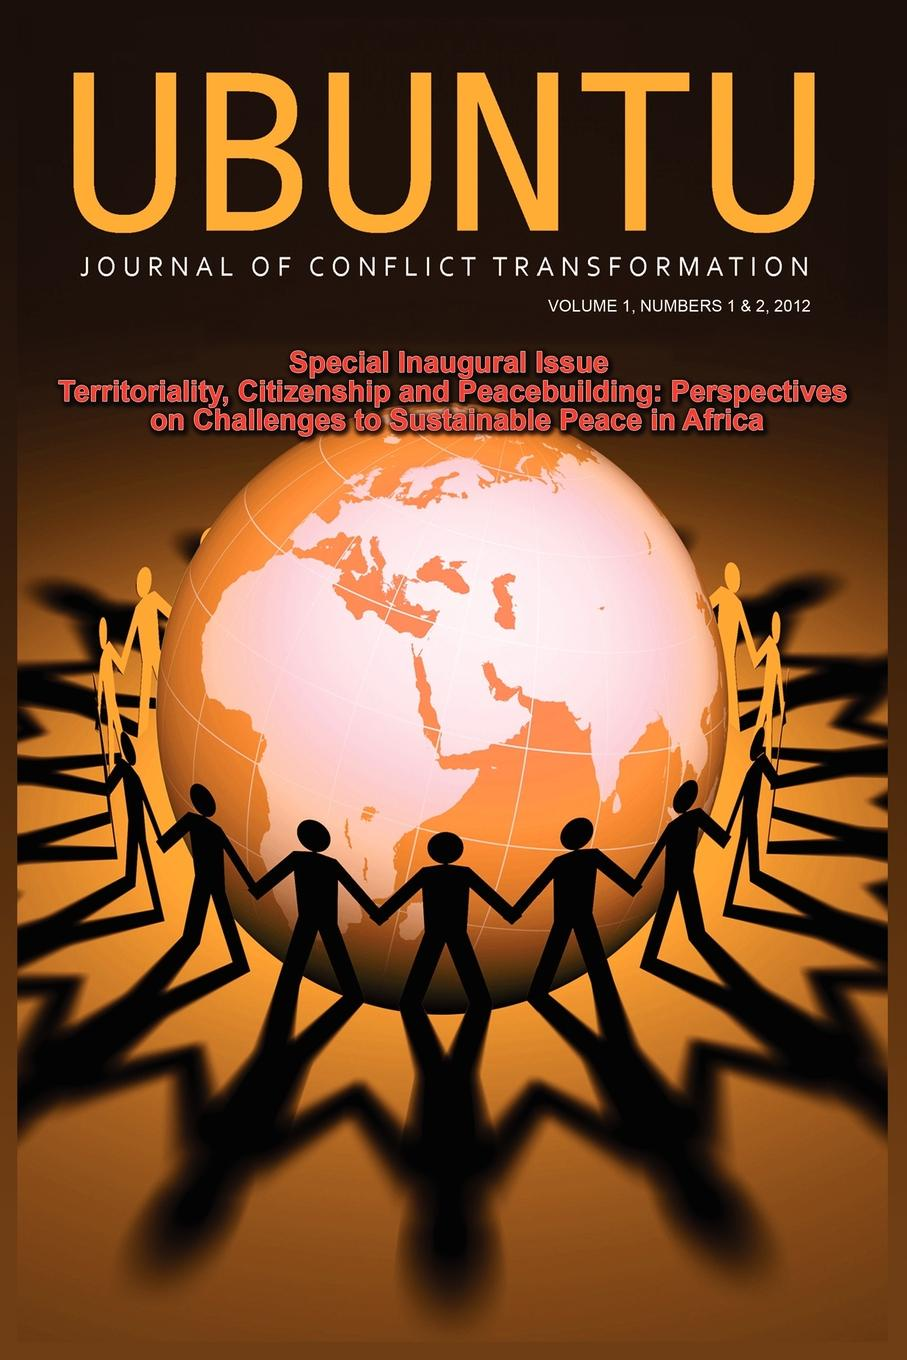 Ubuntu. Journal of Conflict and Social Transformation: Vol 1, Number 1-2, 2012 post conflict peace building of united nations in kenya